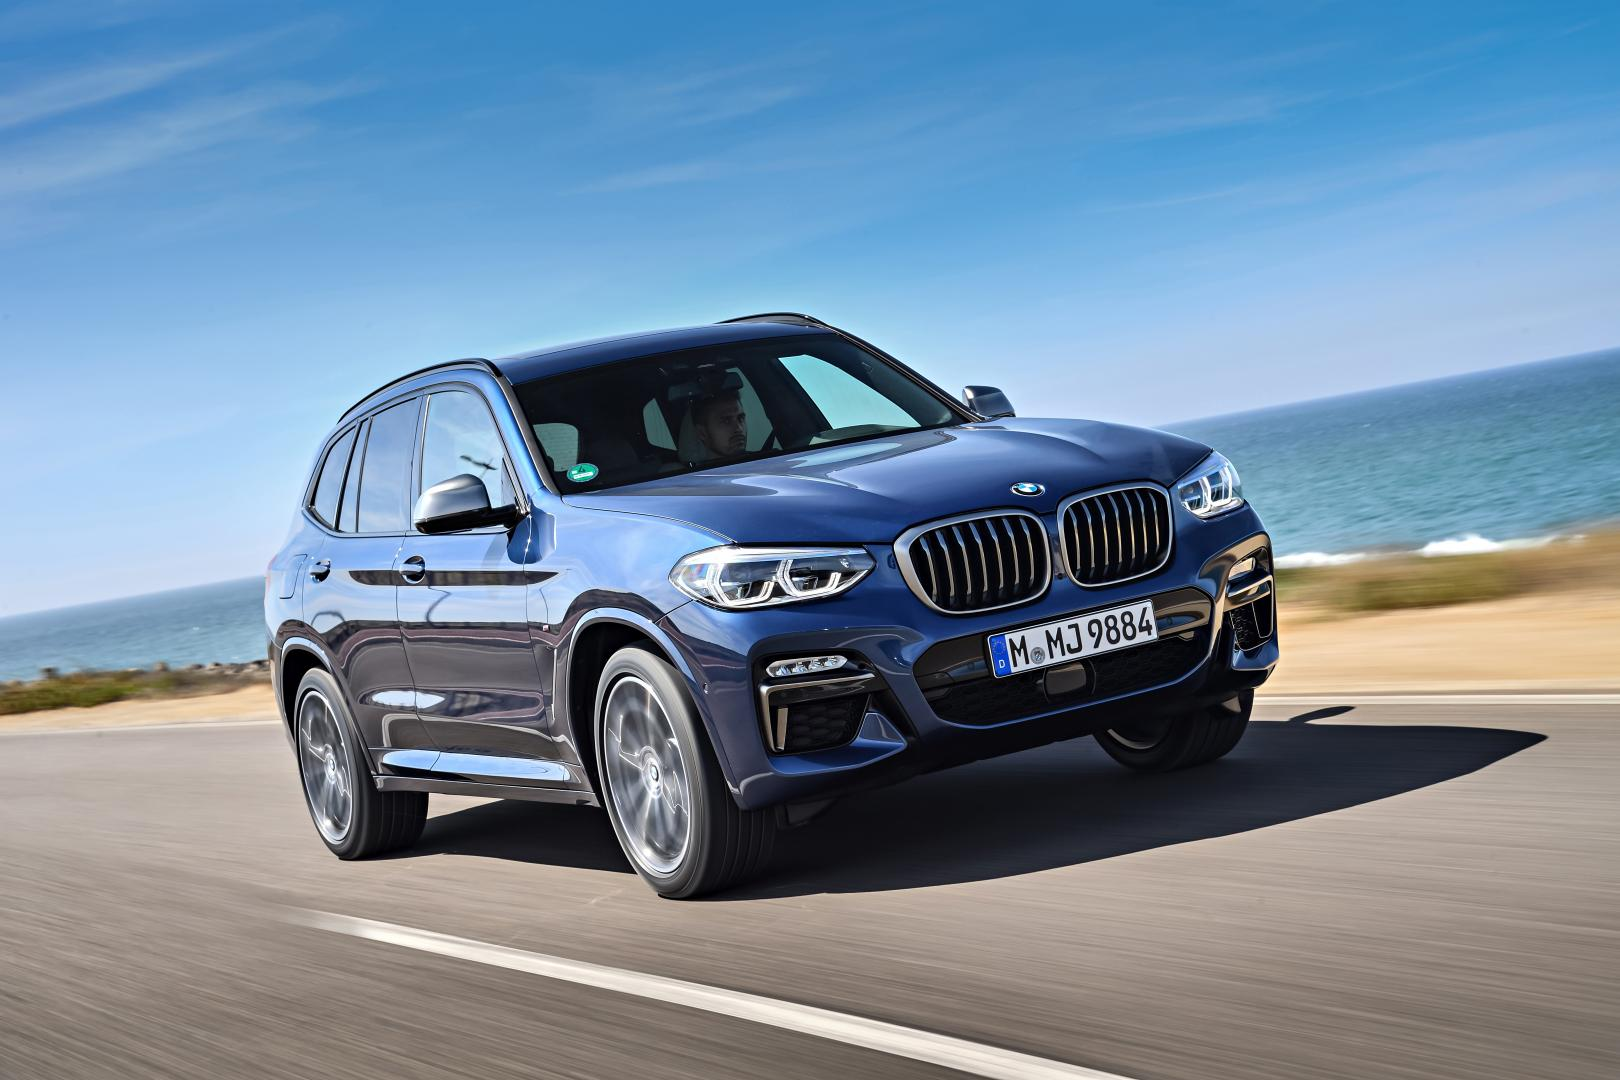 bmw x3 m40i autotest en specificaties topgear nederland. Black Bedroom Furniture Sets. Home Design Ideas